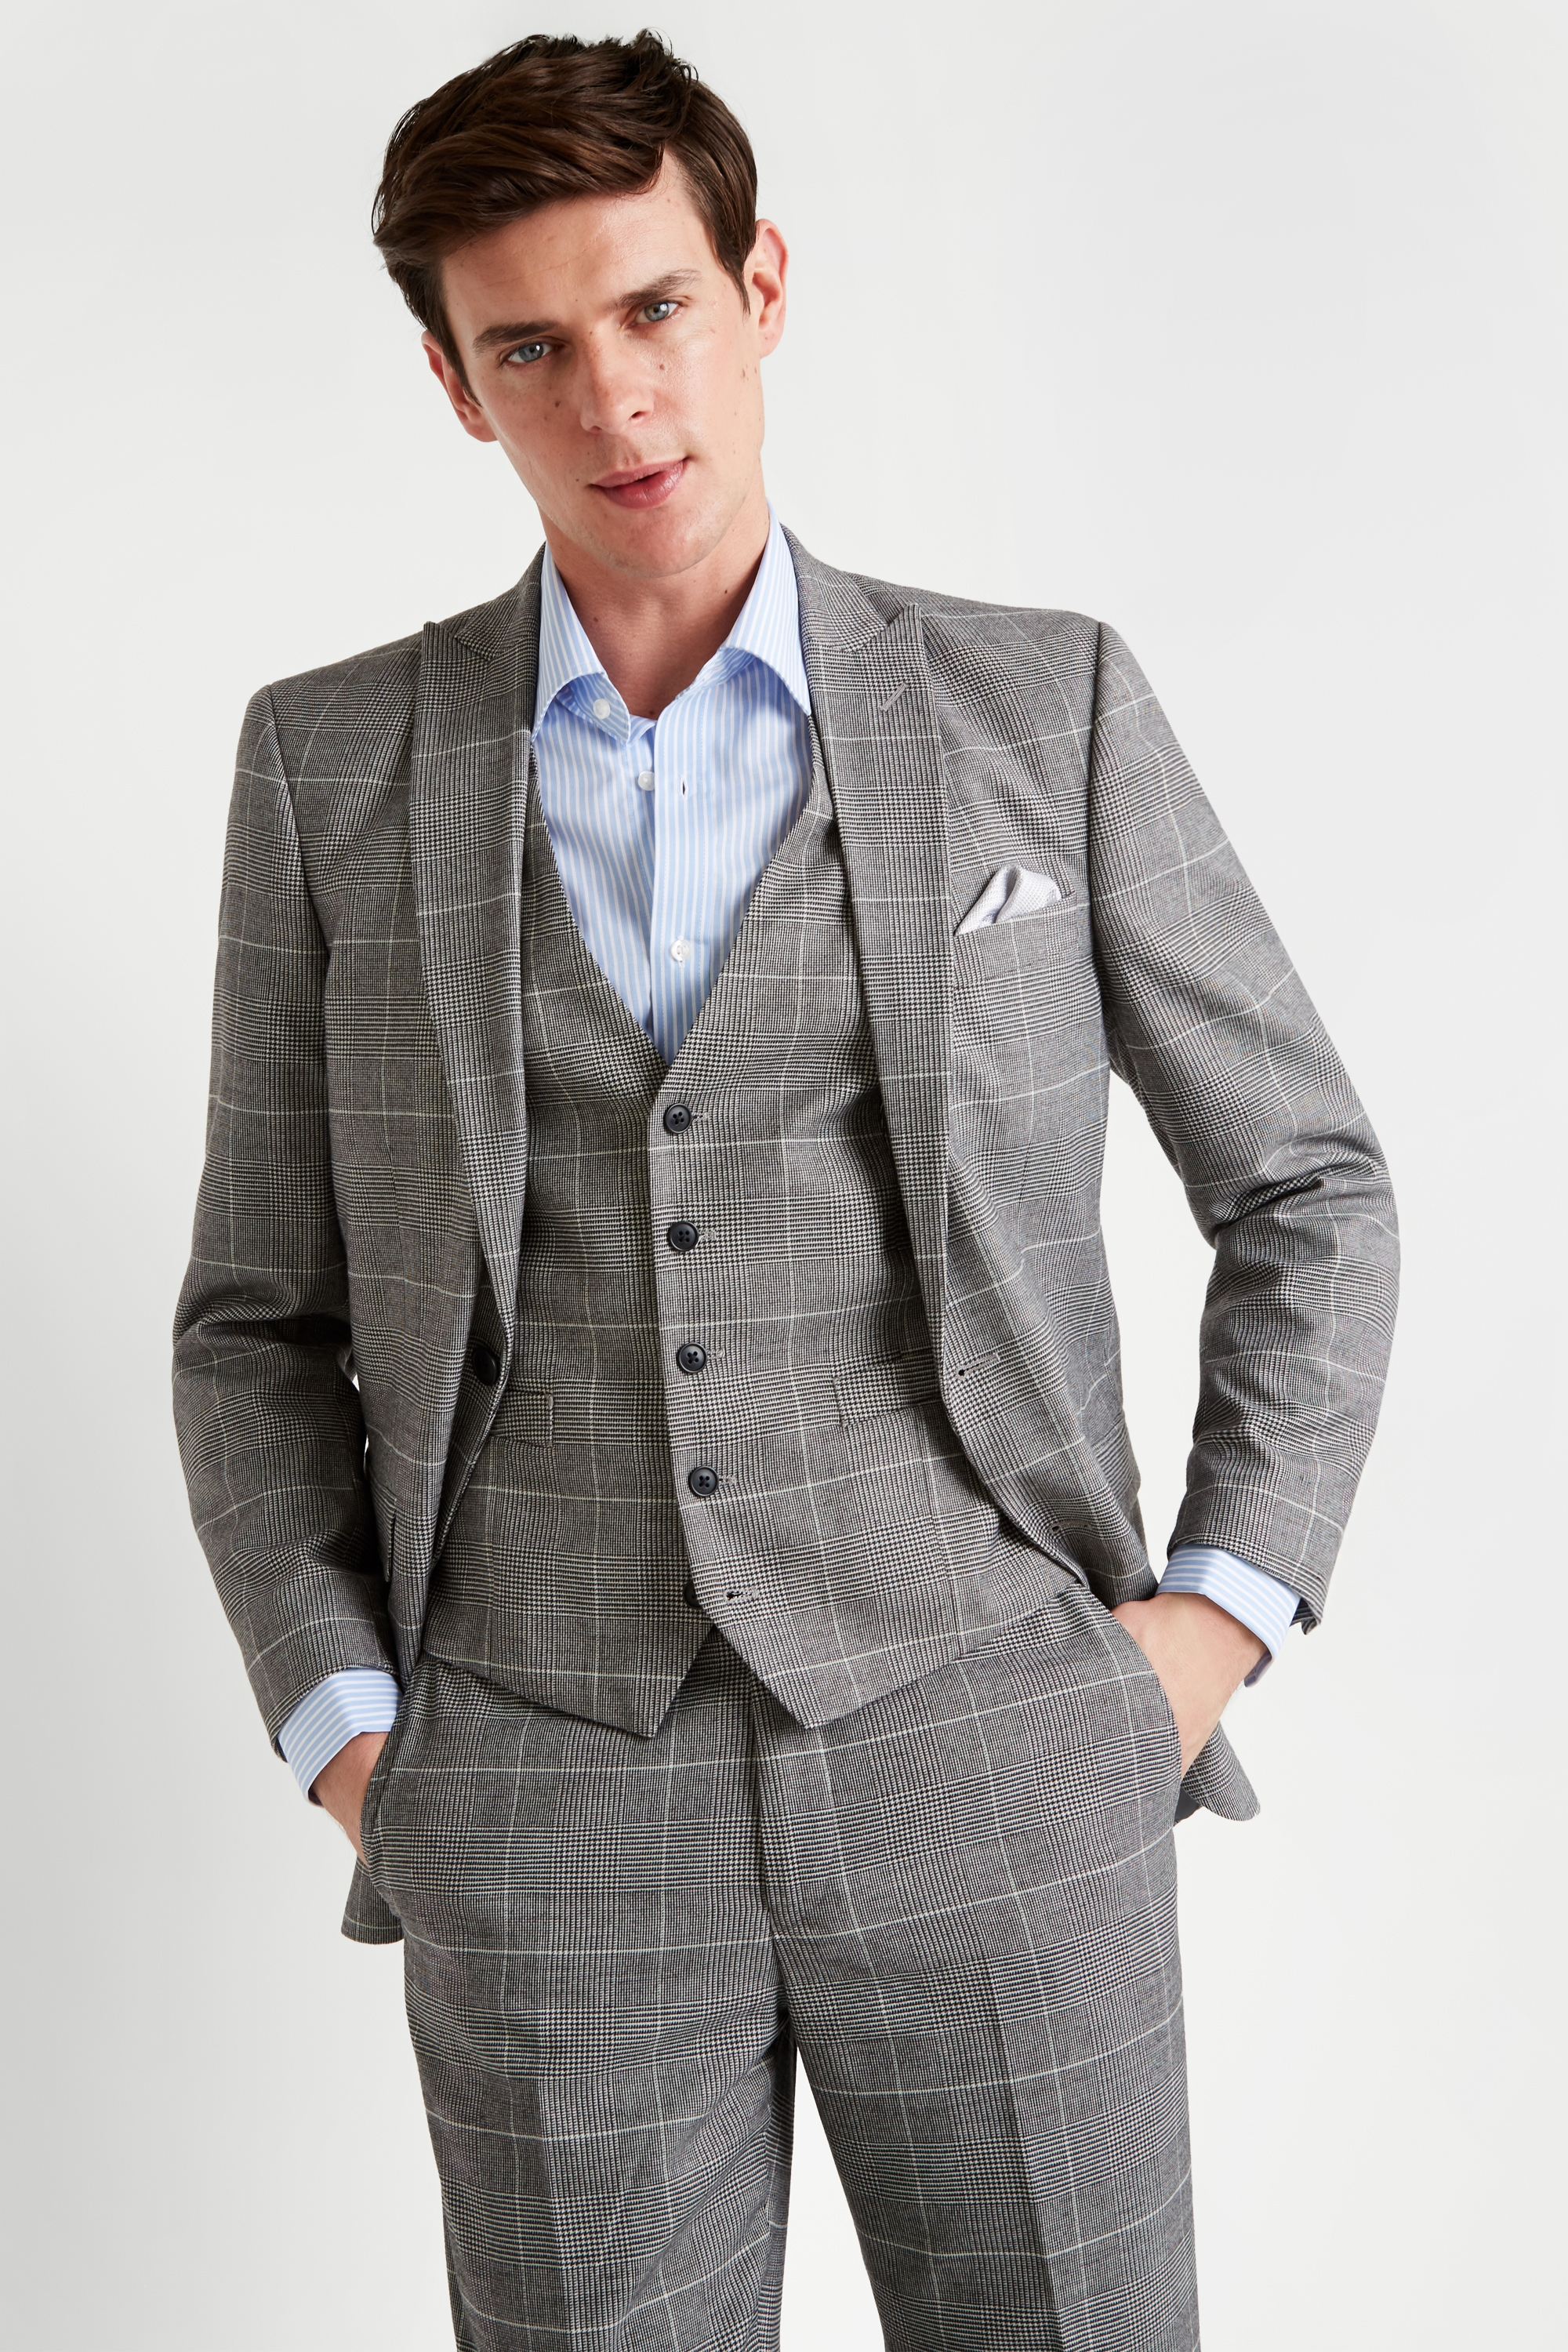 Details about Moss Esq. Regular Fit Black and White Check Mens Suit Jacket  2 Button